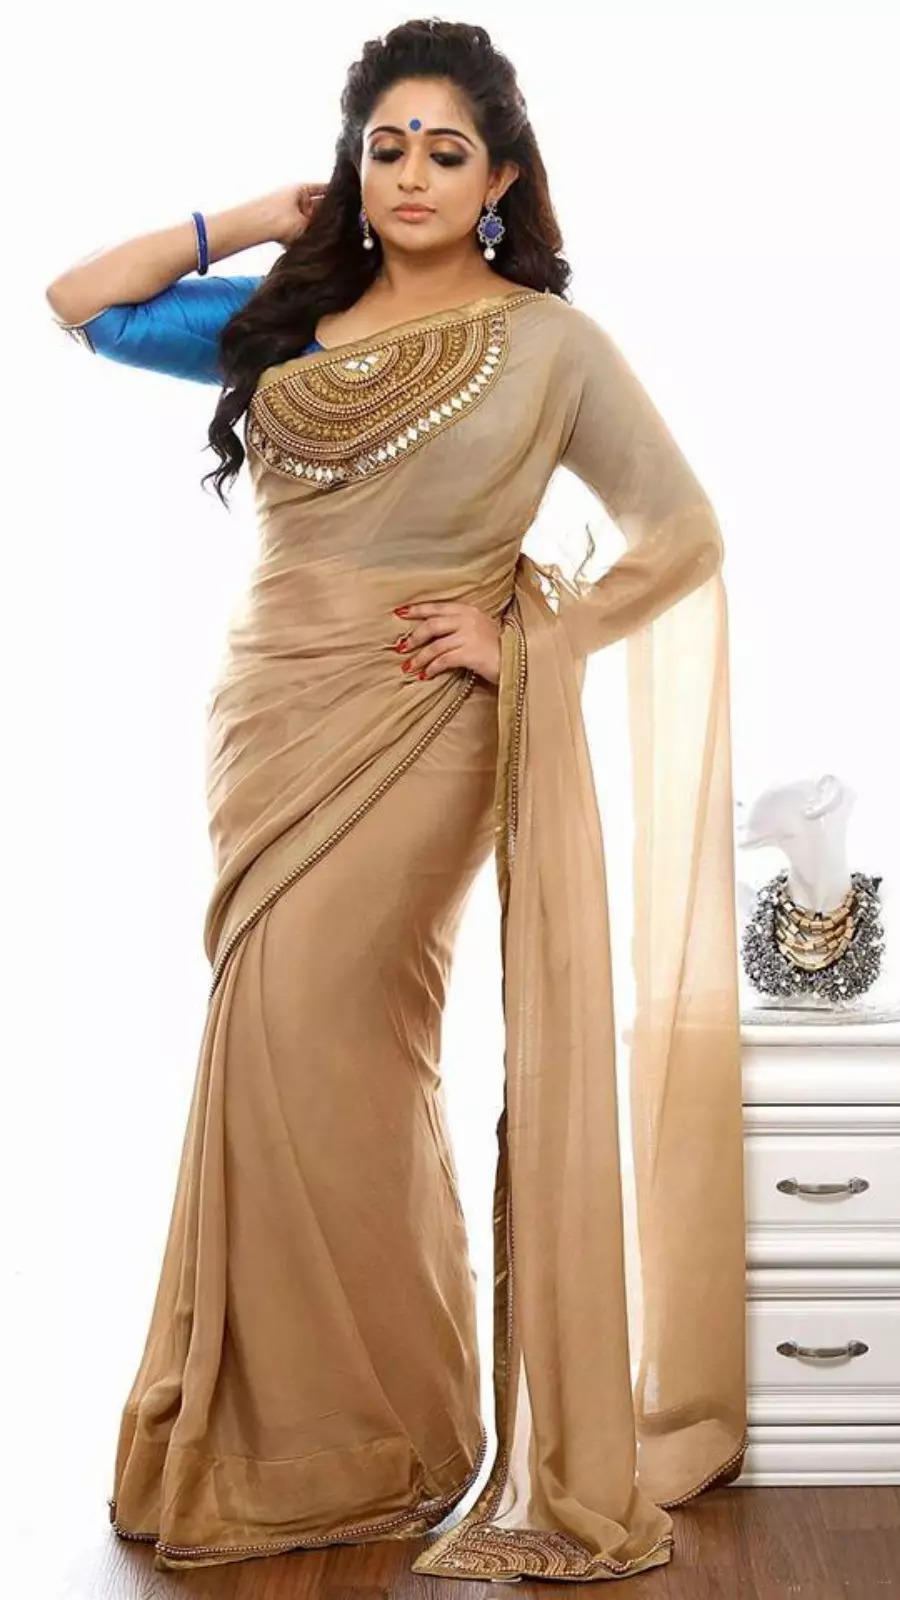 Share this with a saree lover